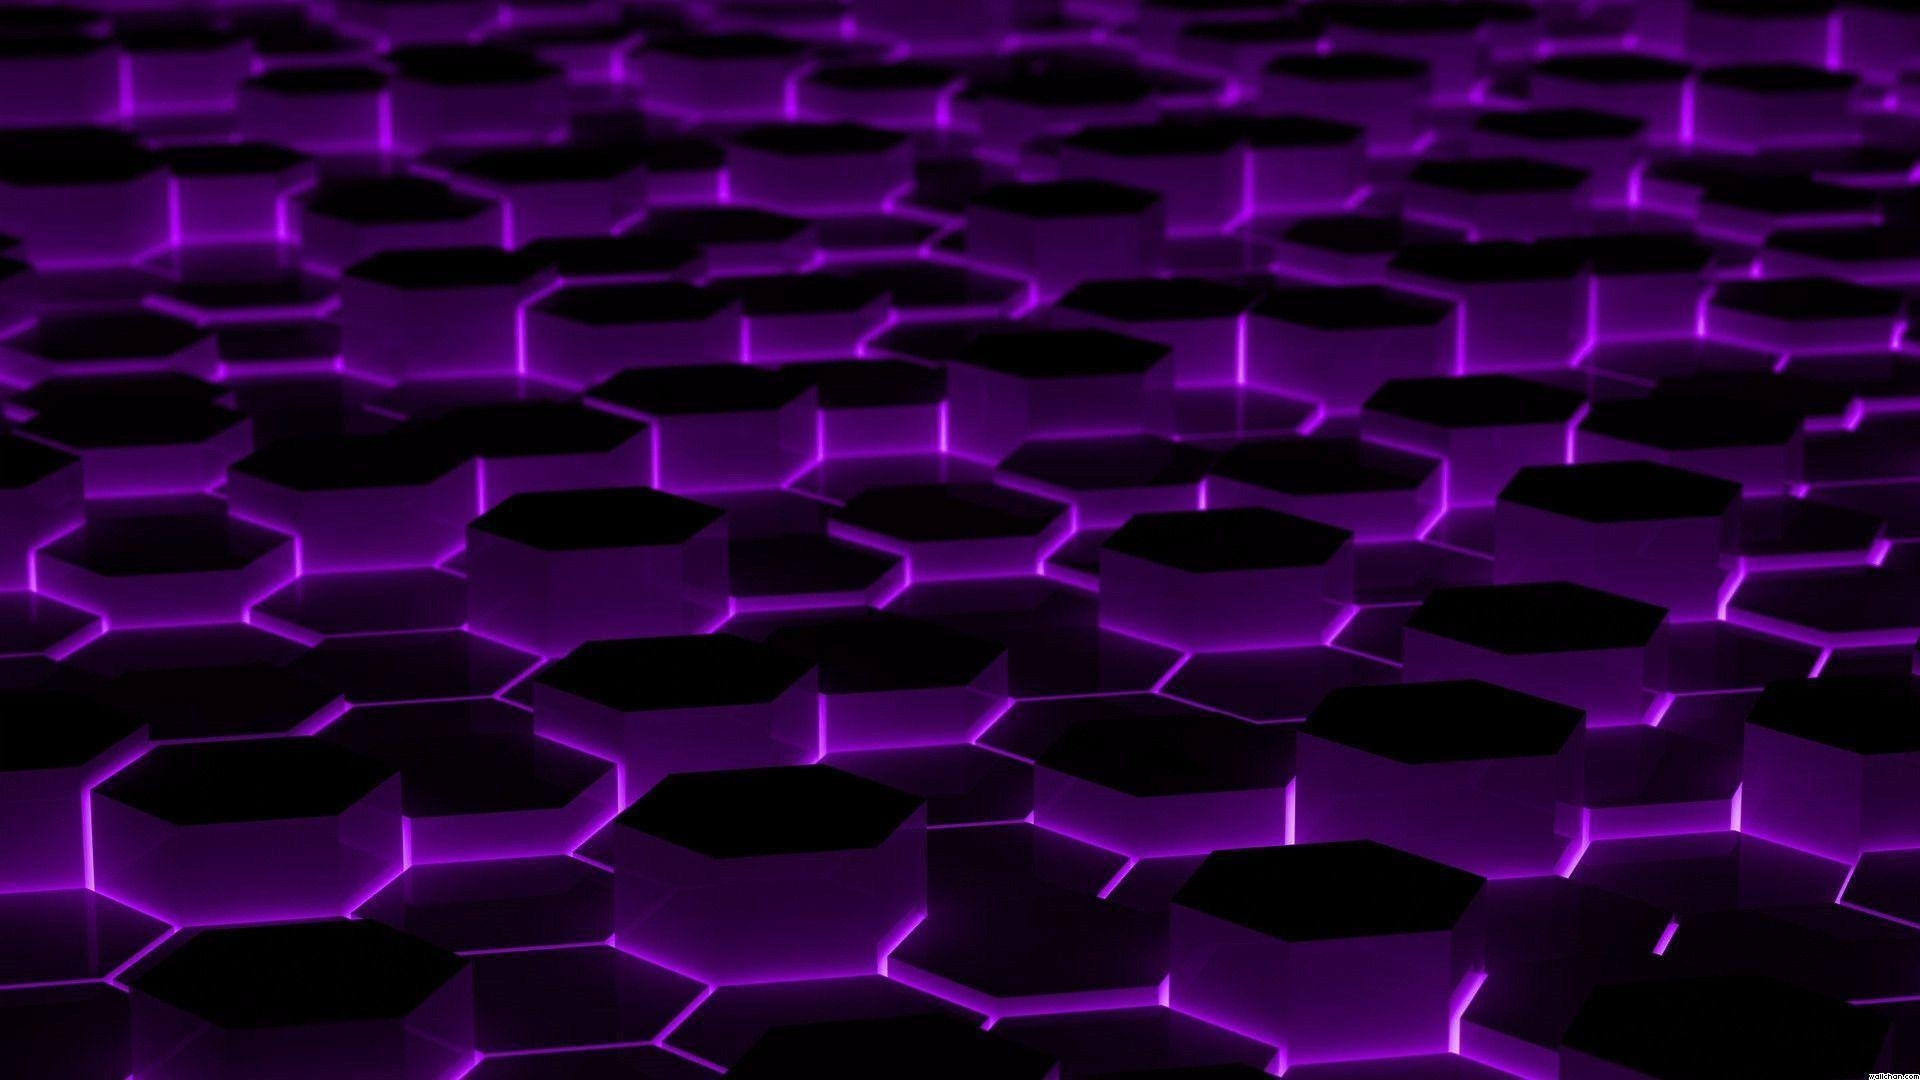 black and purple wallpapers - wallpaper cave